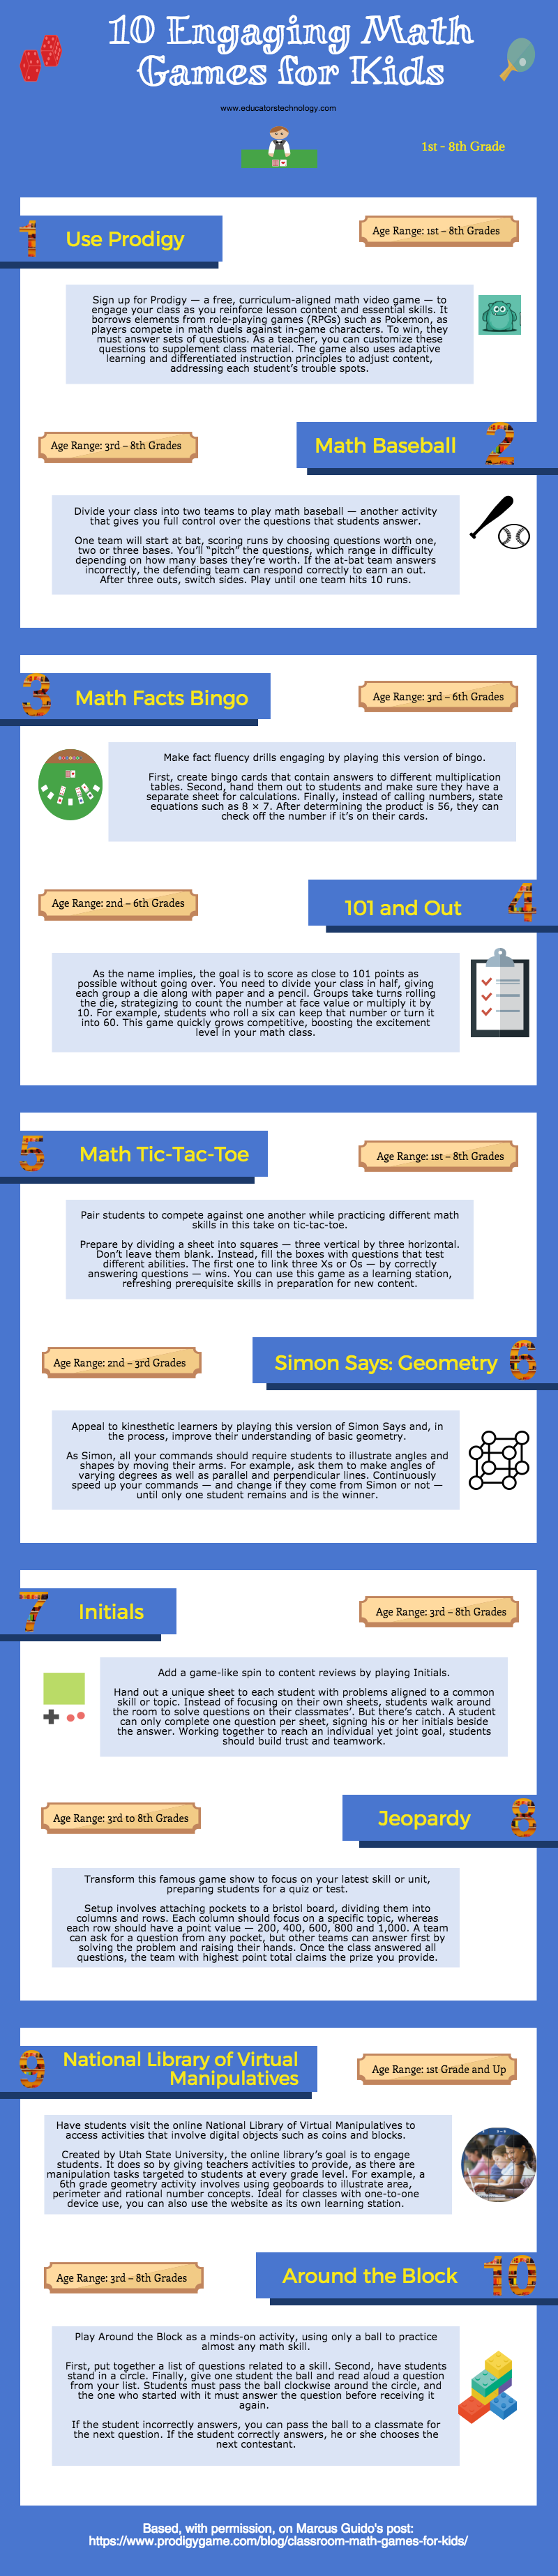 10 Good Math Games for Kids | Educational Technology and Mobile Learning